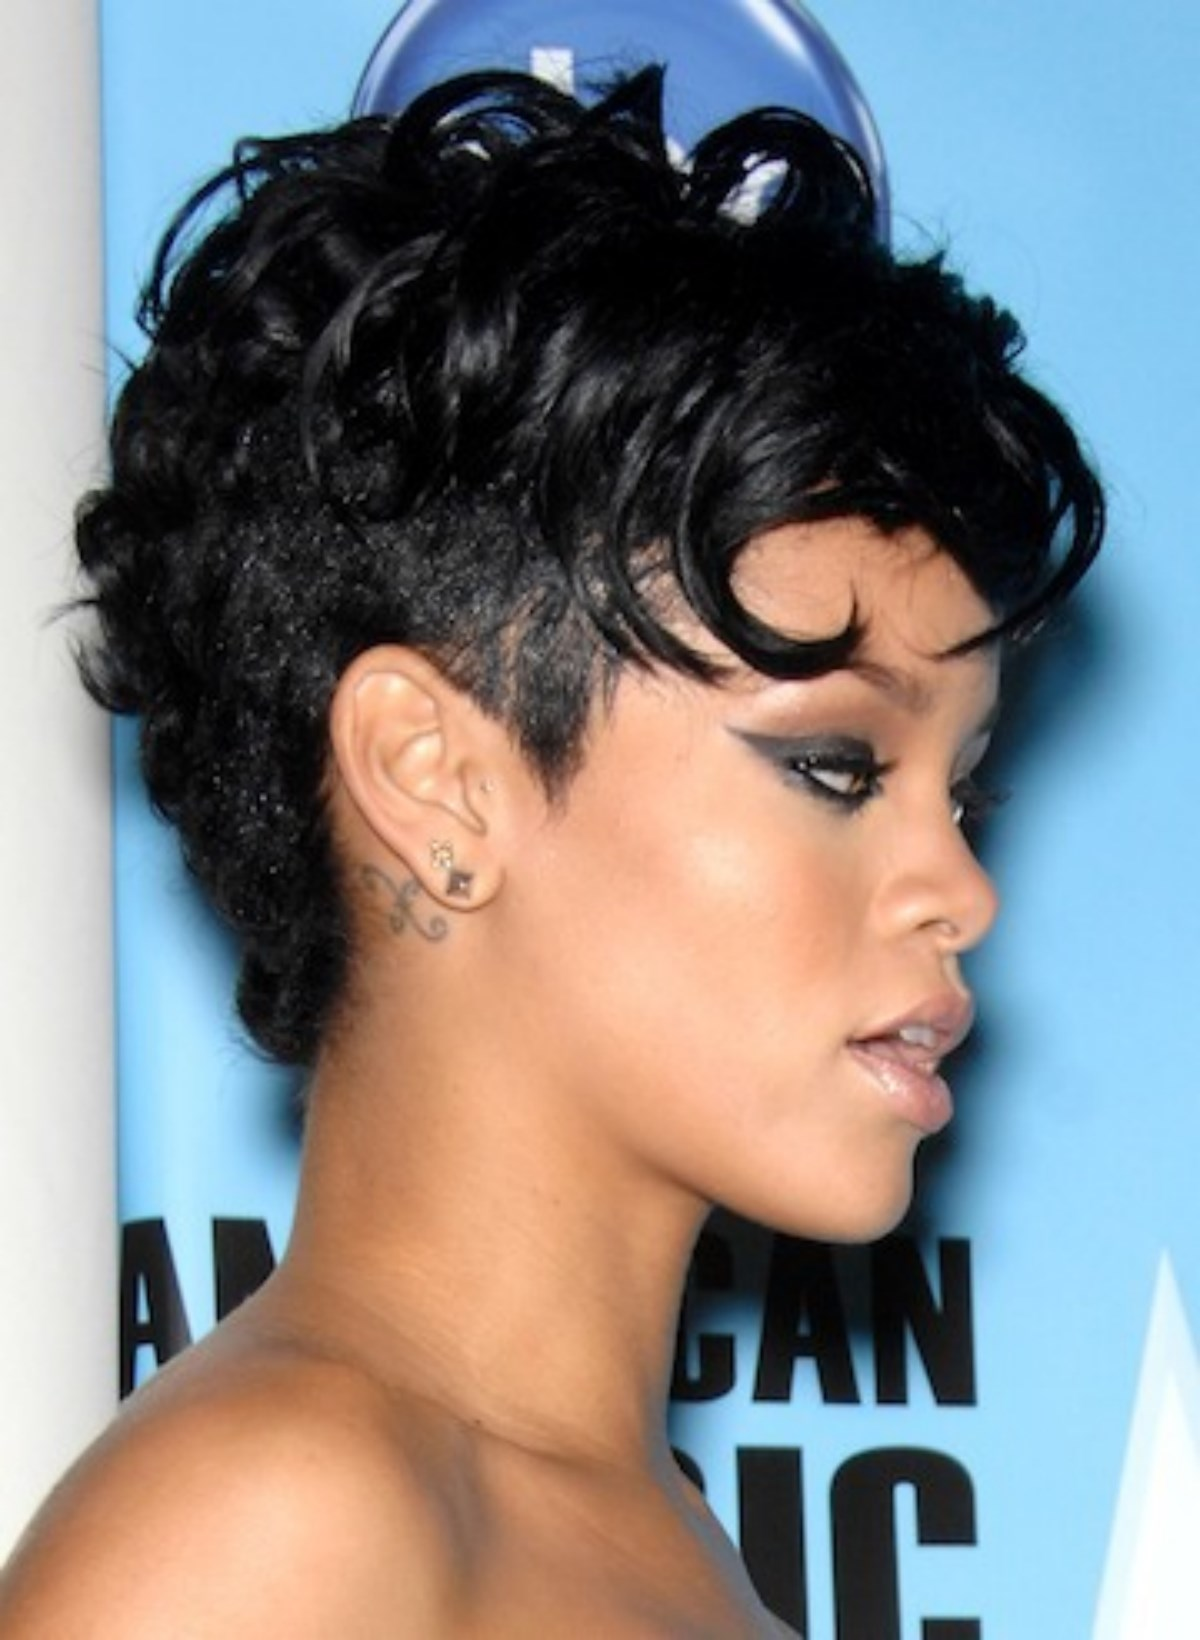 Astonishing Black Short Haircuts Hairstyle For Women Amp Girls A Style Tips Hairstyle Inspiration Daily Dogsangcom